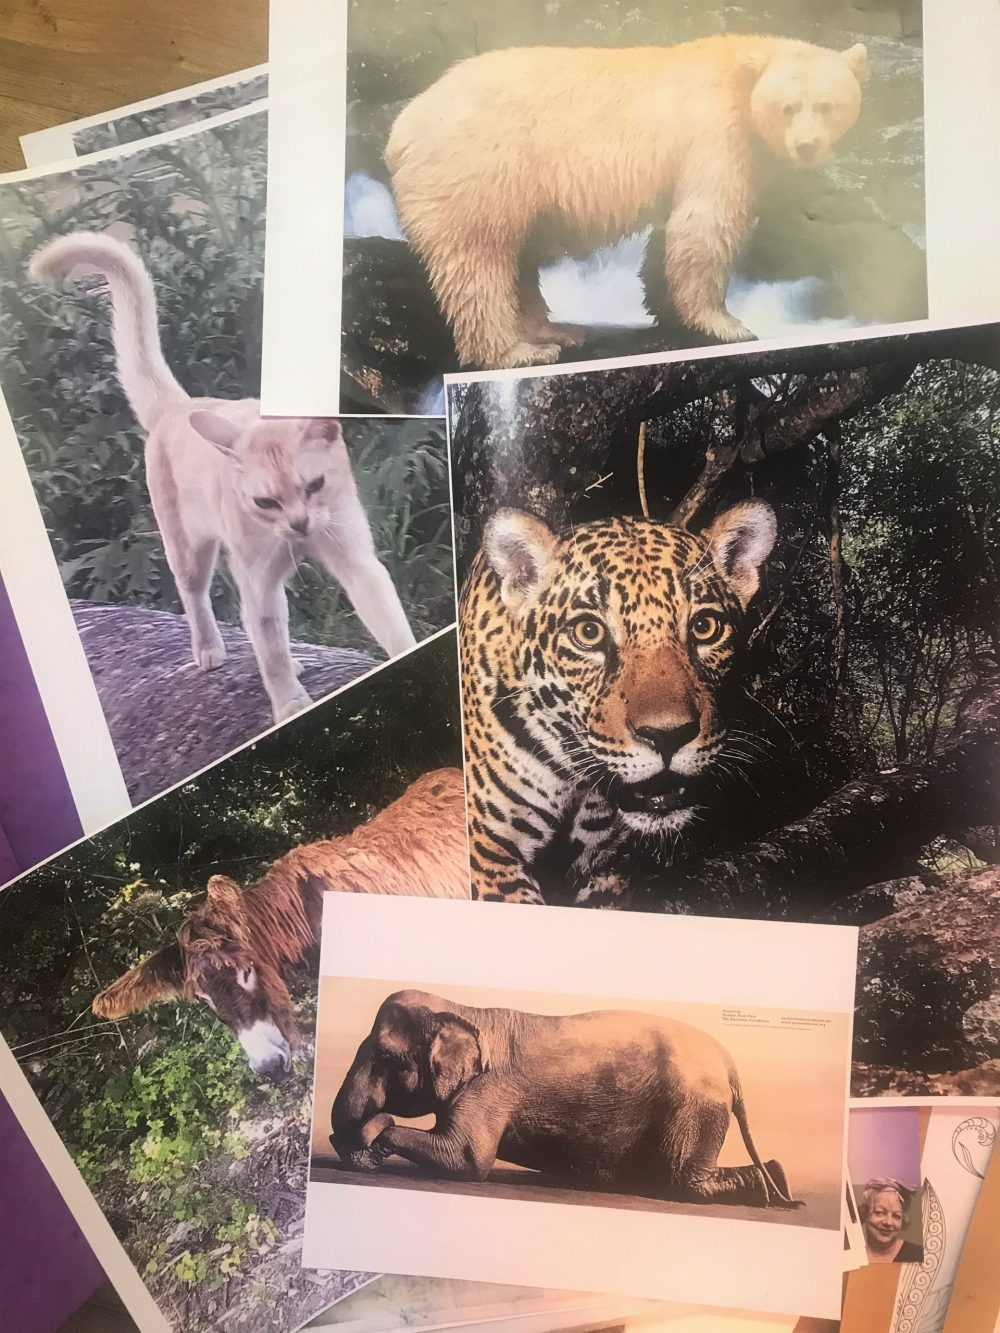 Pictures of animlas were displayed to choose from